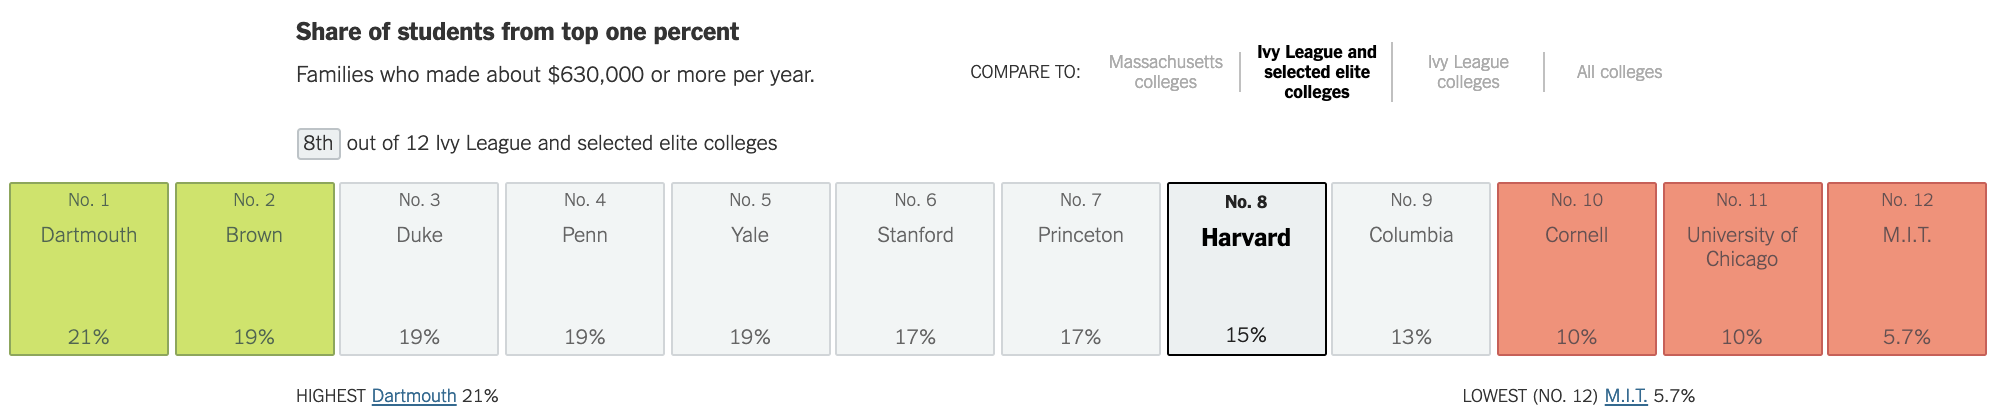 Share of students at various Ivy League schools who come from the top one percent income levels